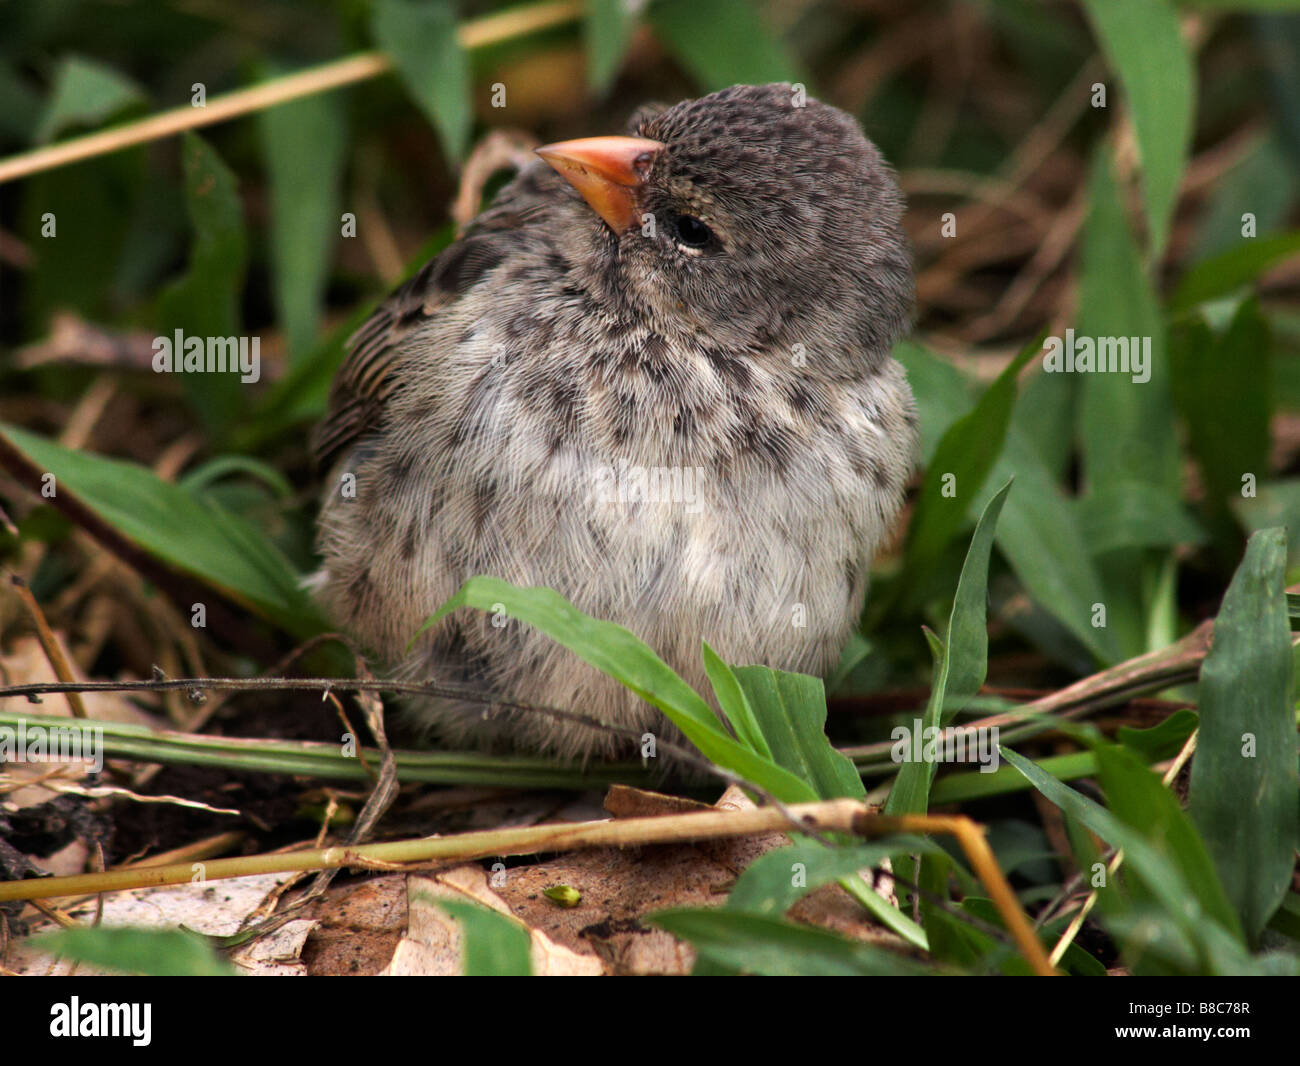 Darwin ground finch, Geospiza, looking for food on ground at Puerto Ayora Highlands, Santa Cruz Island, Galapagos - Stock Image